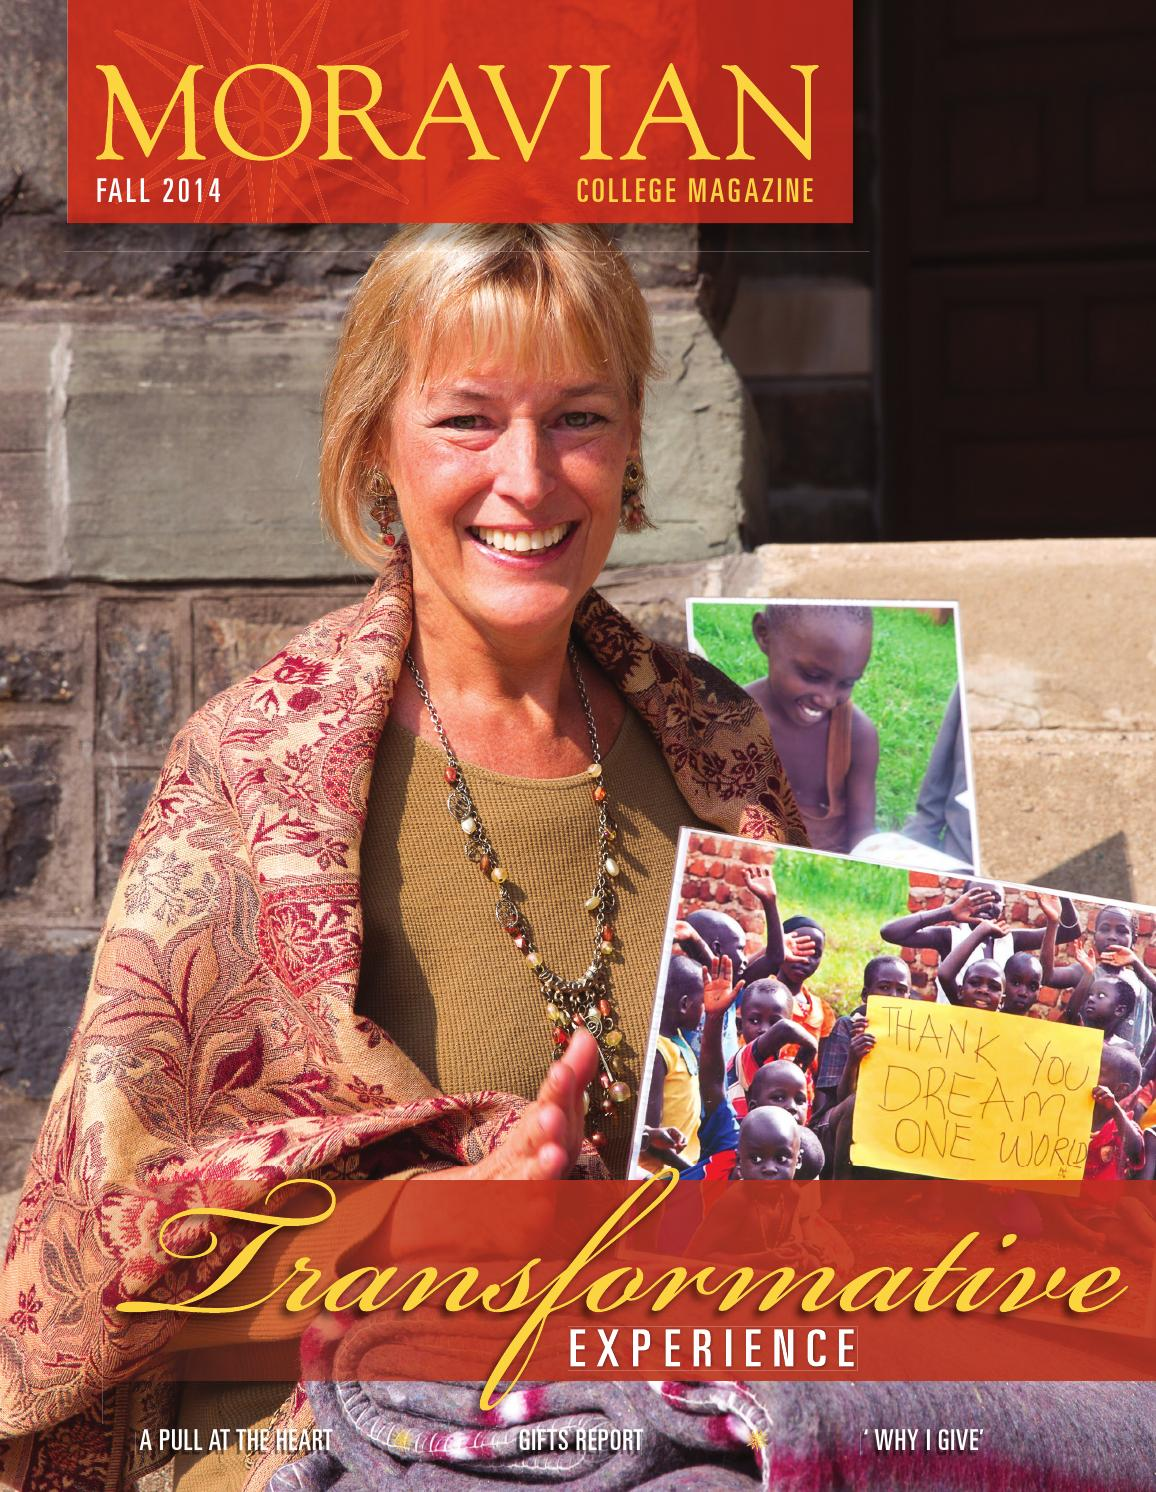 Moravian College Magazine Fall 2014 By Moravian College Issuu